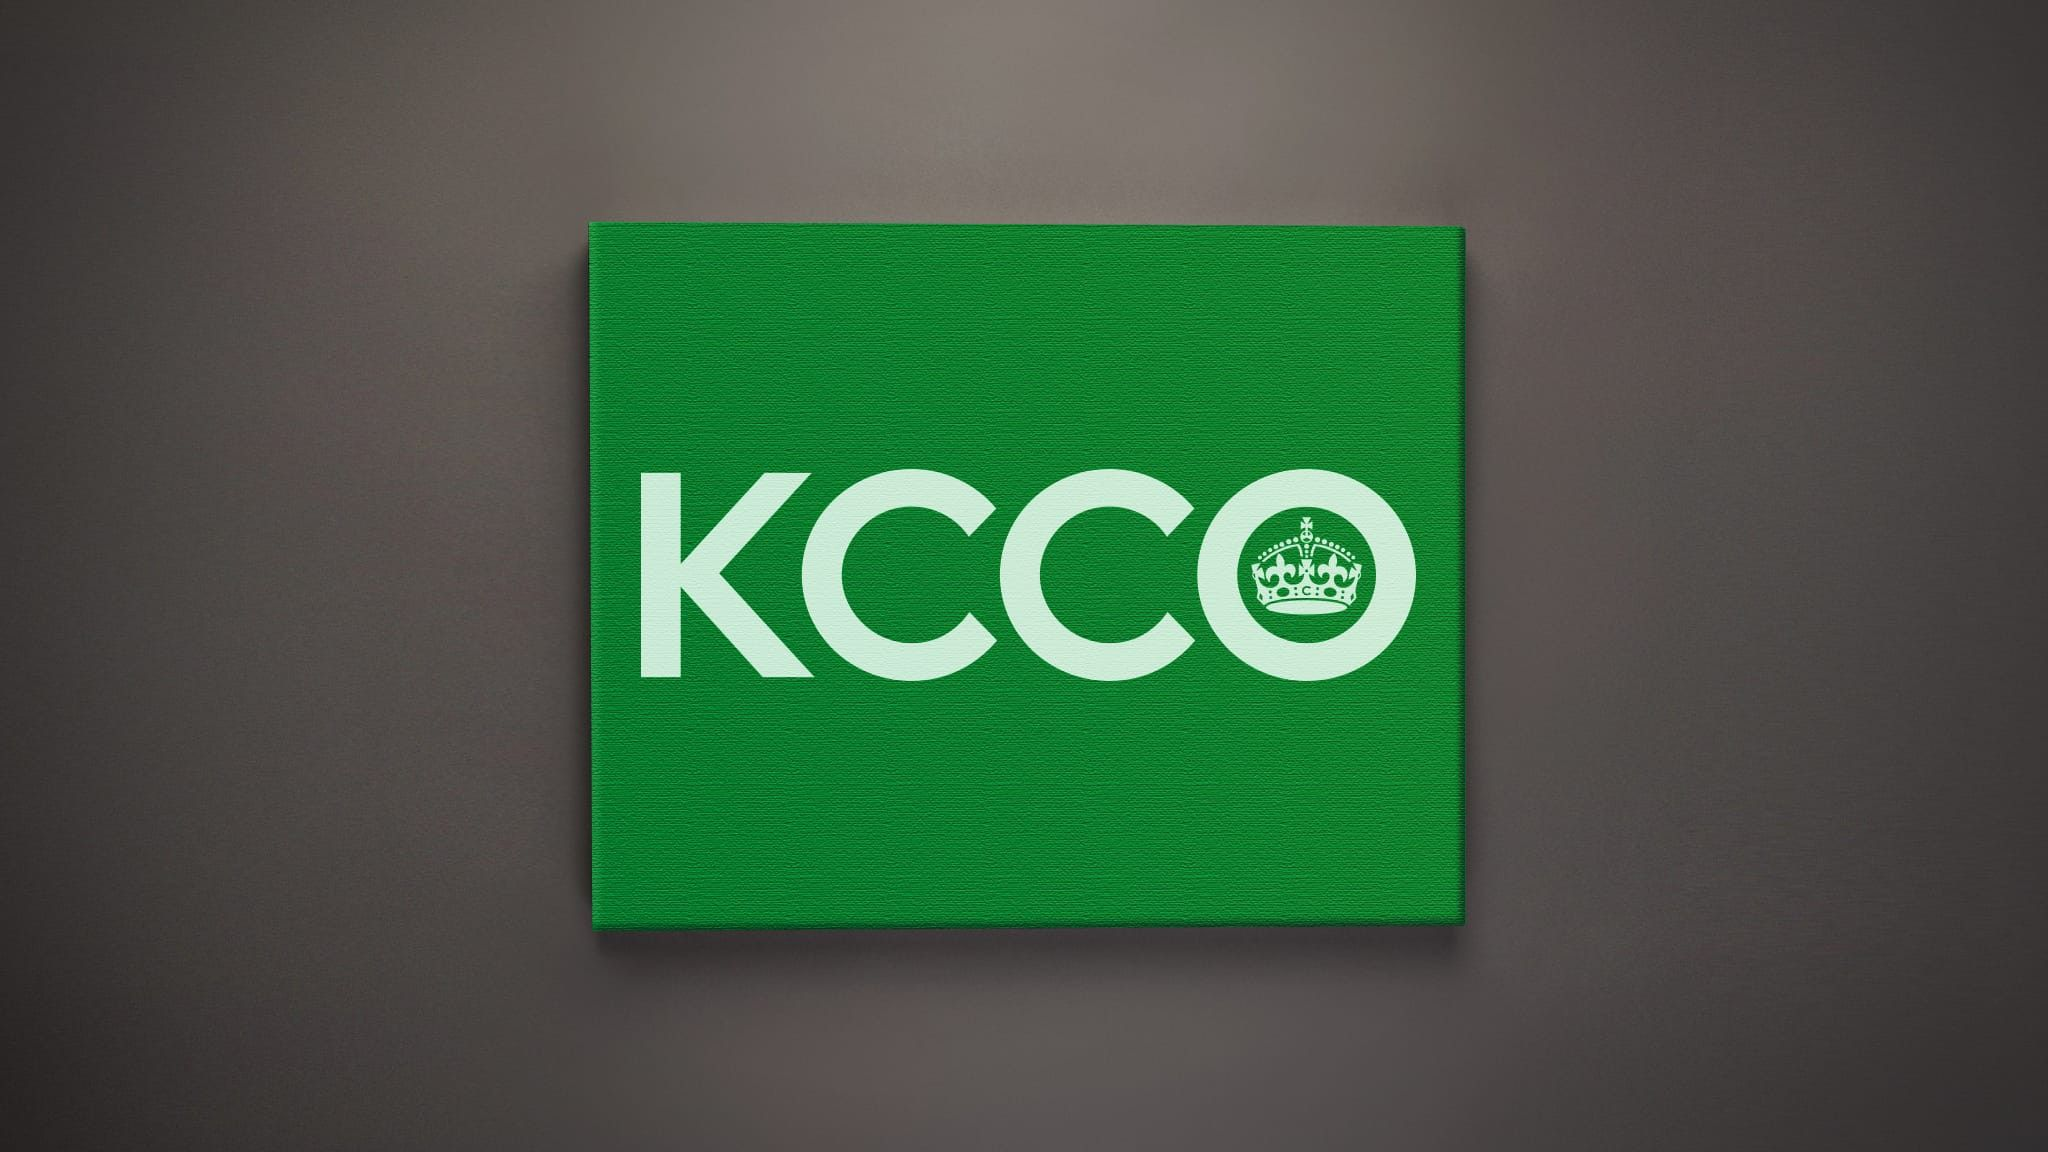 theCHIVE's iron-clad credo, now available on a 16 x 20in canvas.   Keep calm and Chive On...and On. And then Chive On some more.